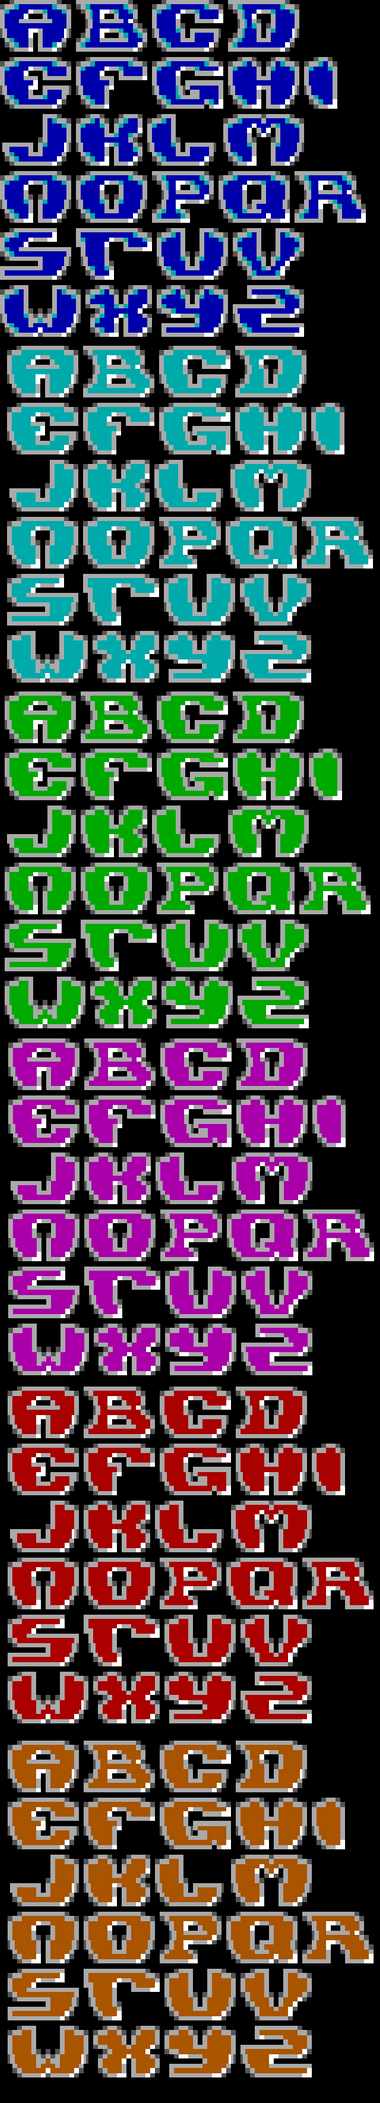 TheDraw TDF ANSI Font - Font 76 by roy-sac